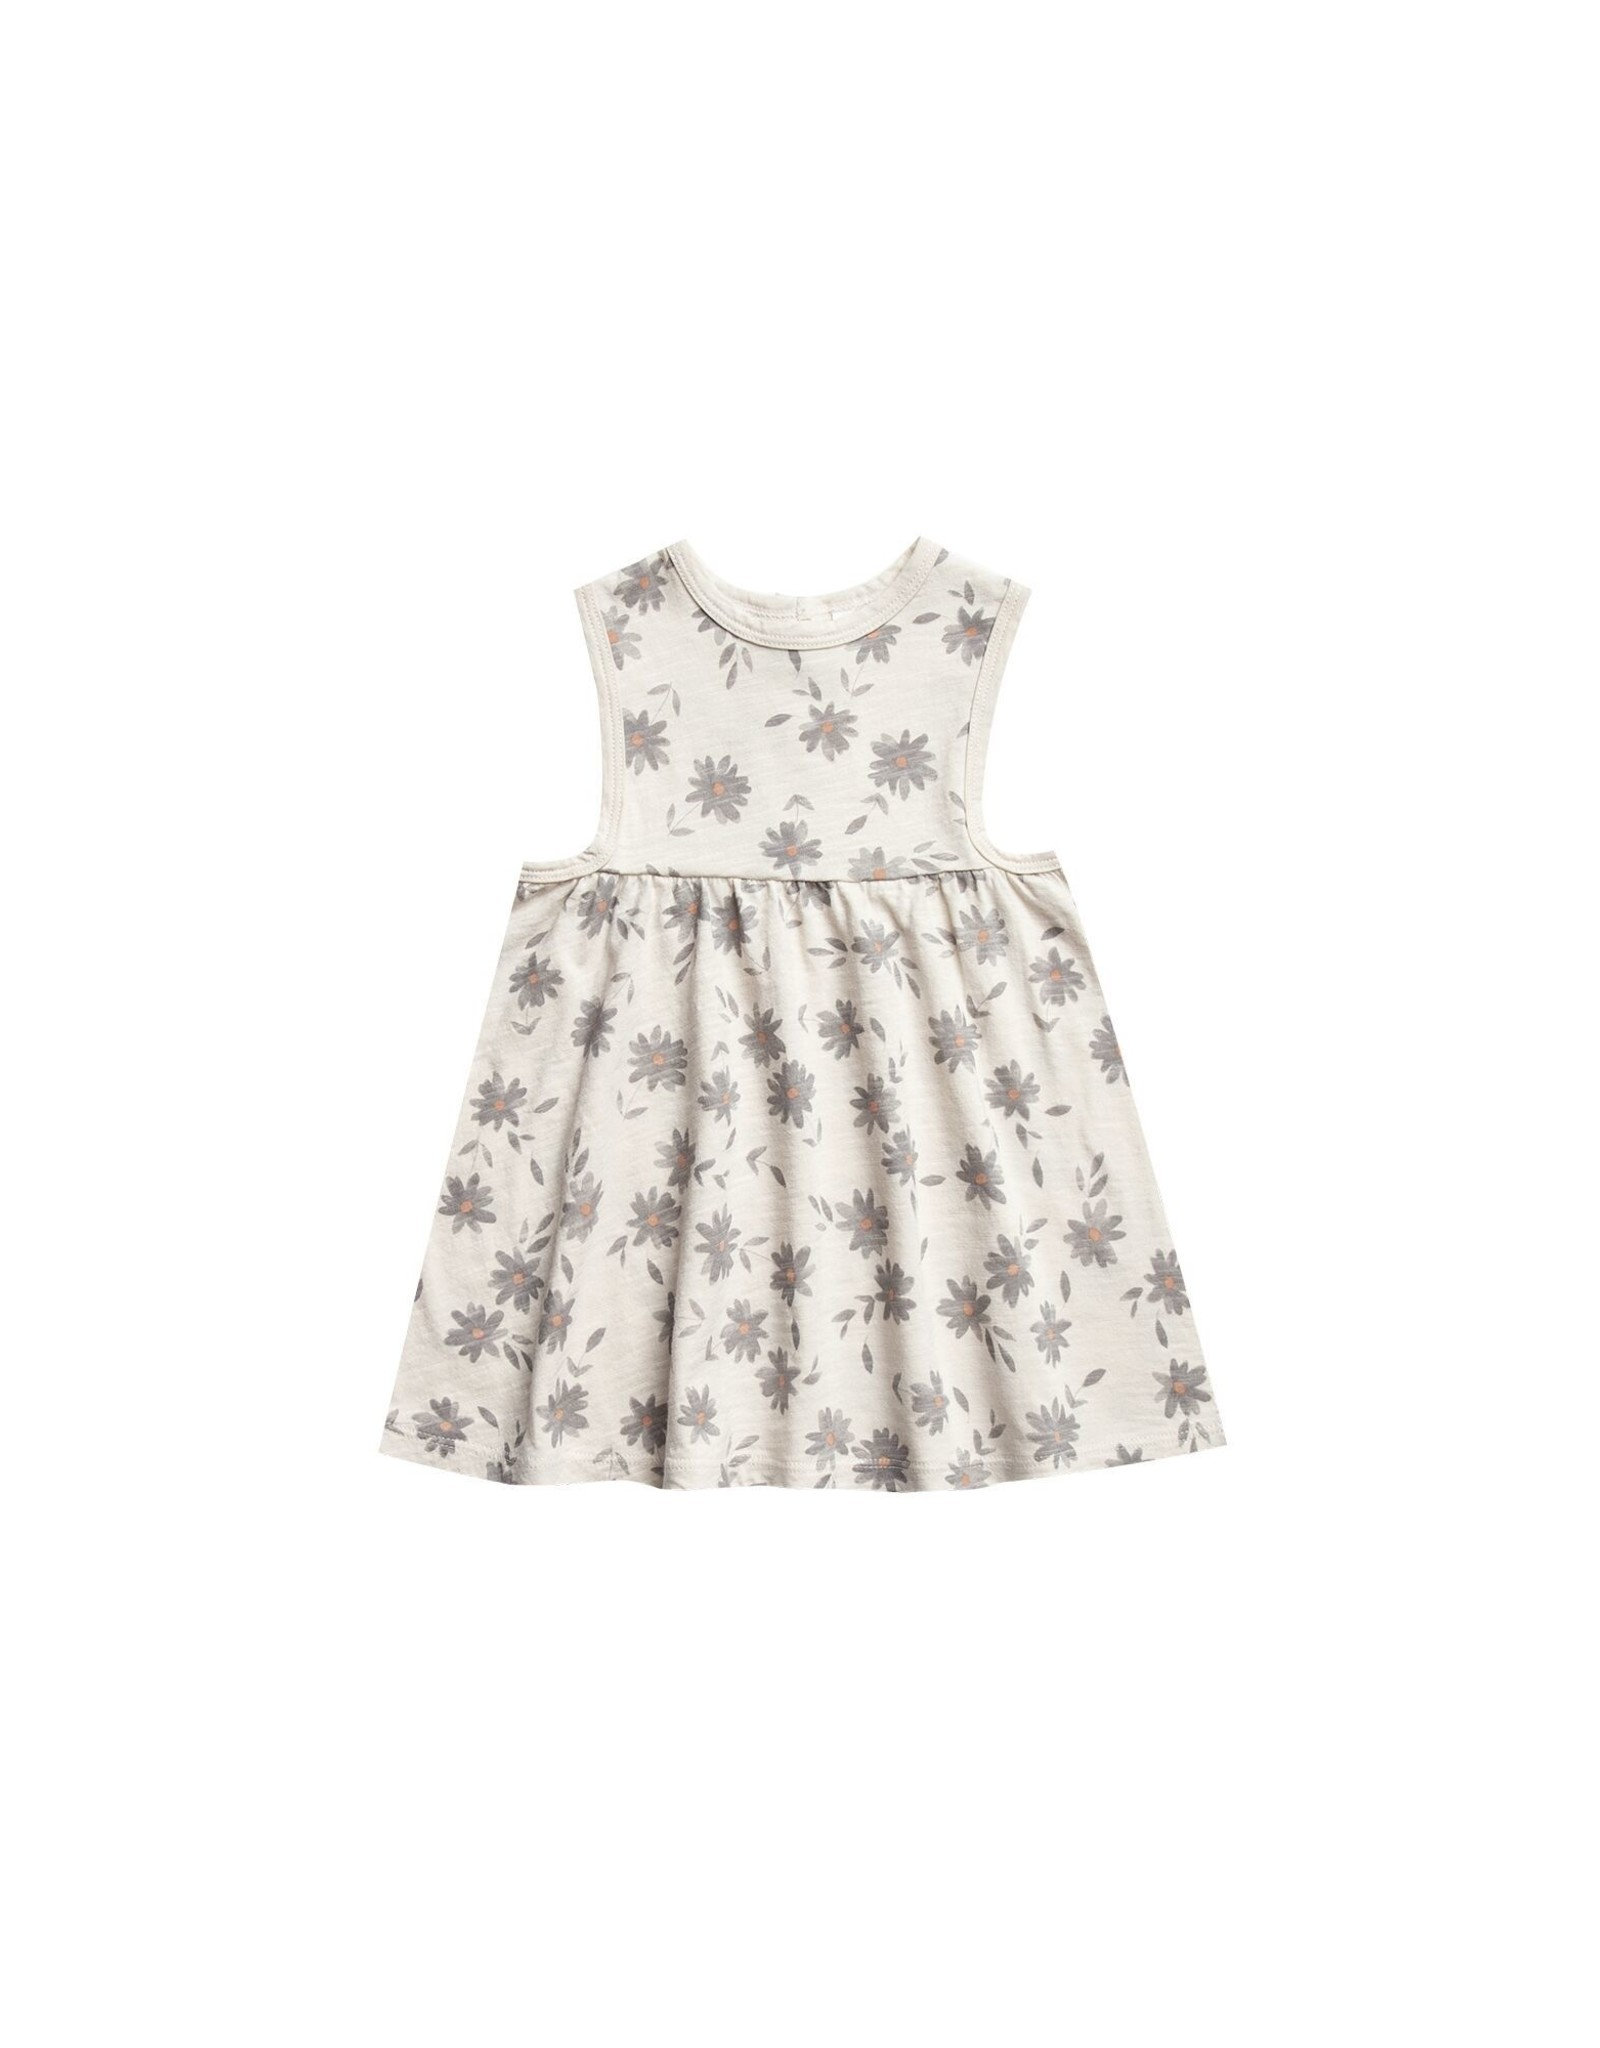 Rylee and Cru daises layla dress